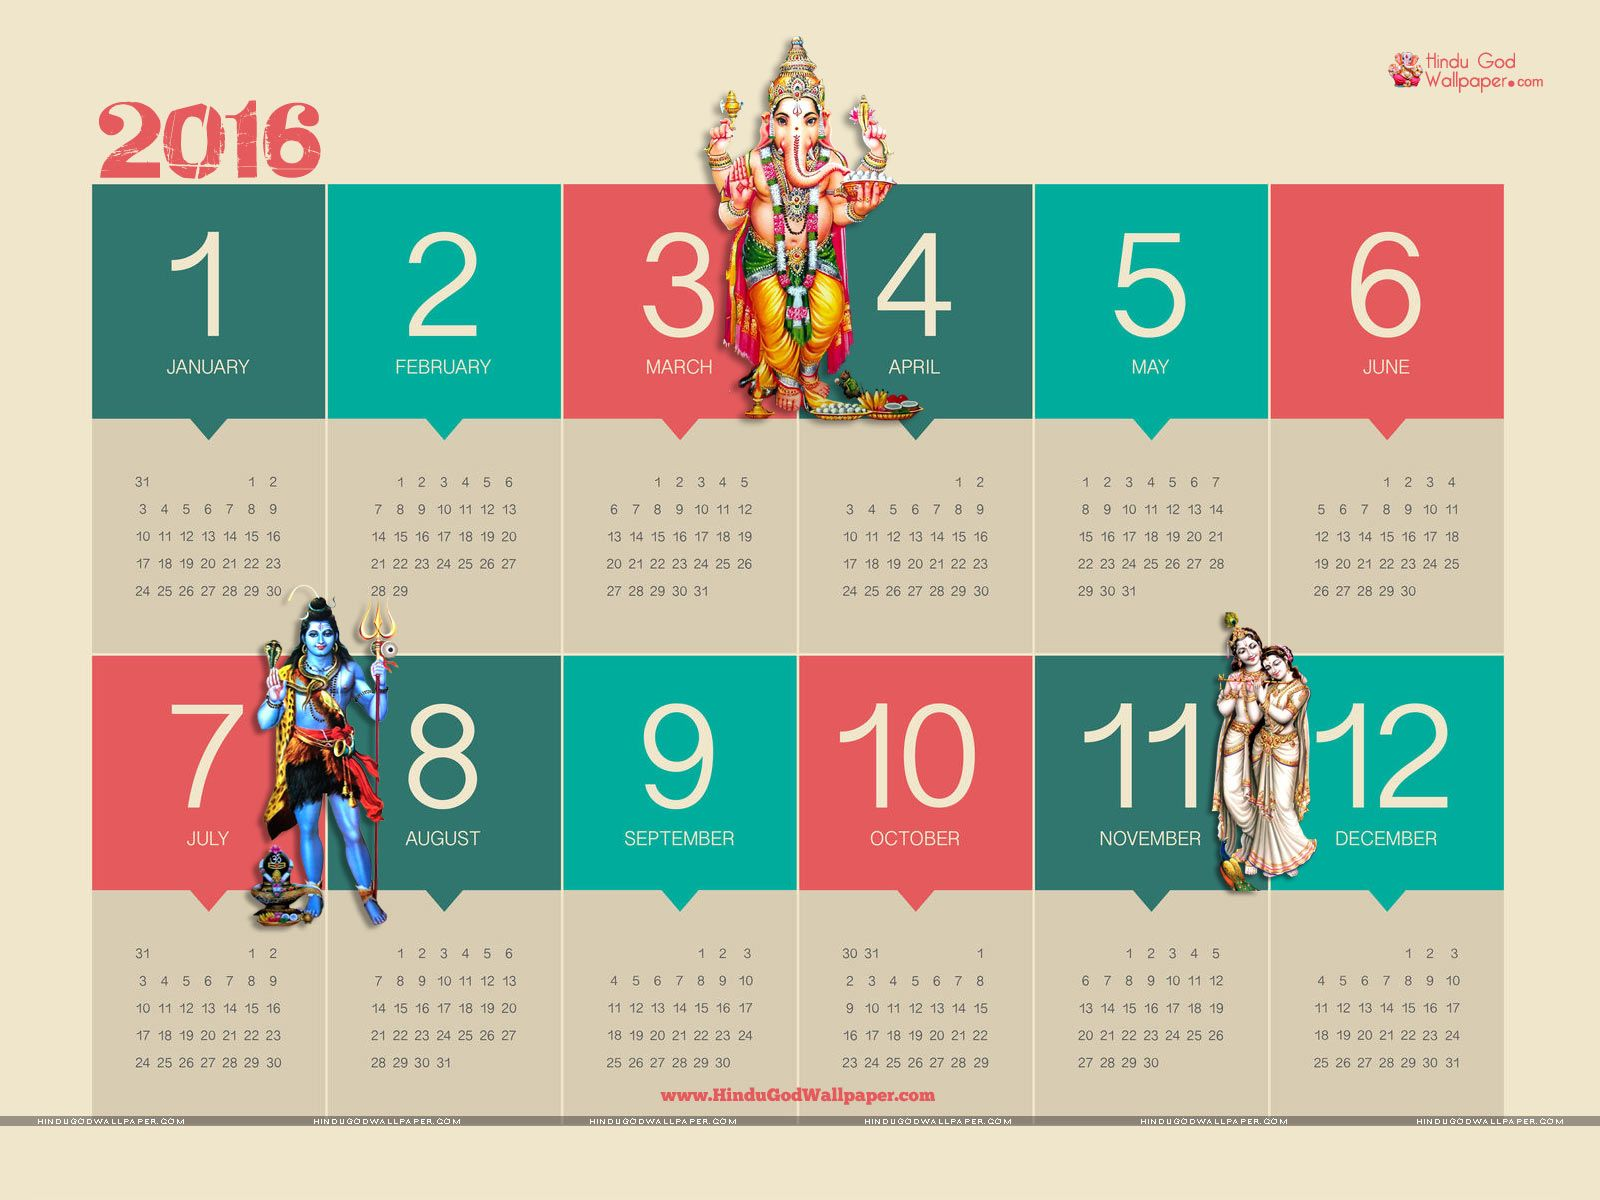 free desktop wallpaper calendar 2016 download